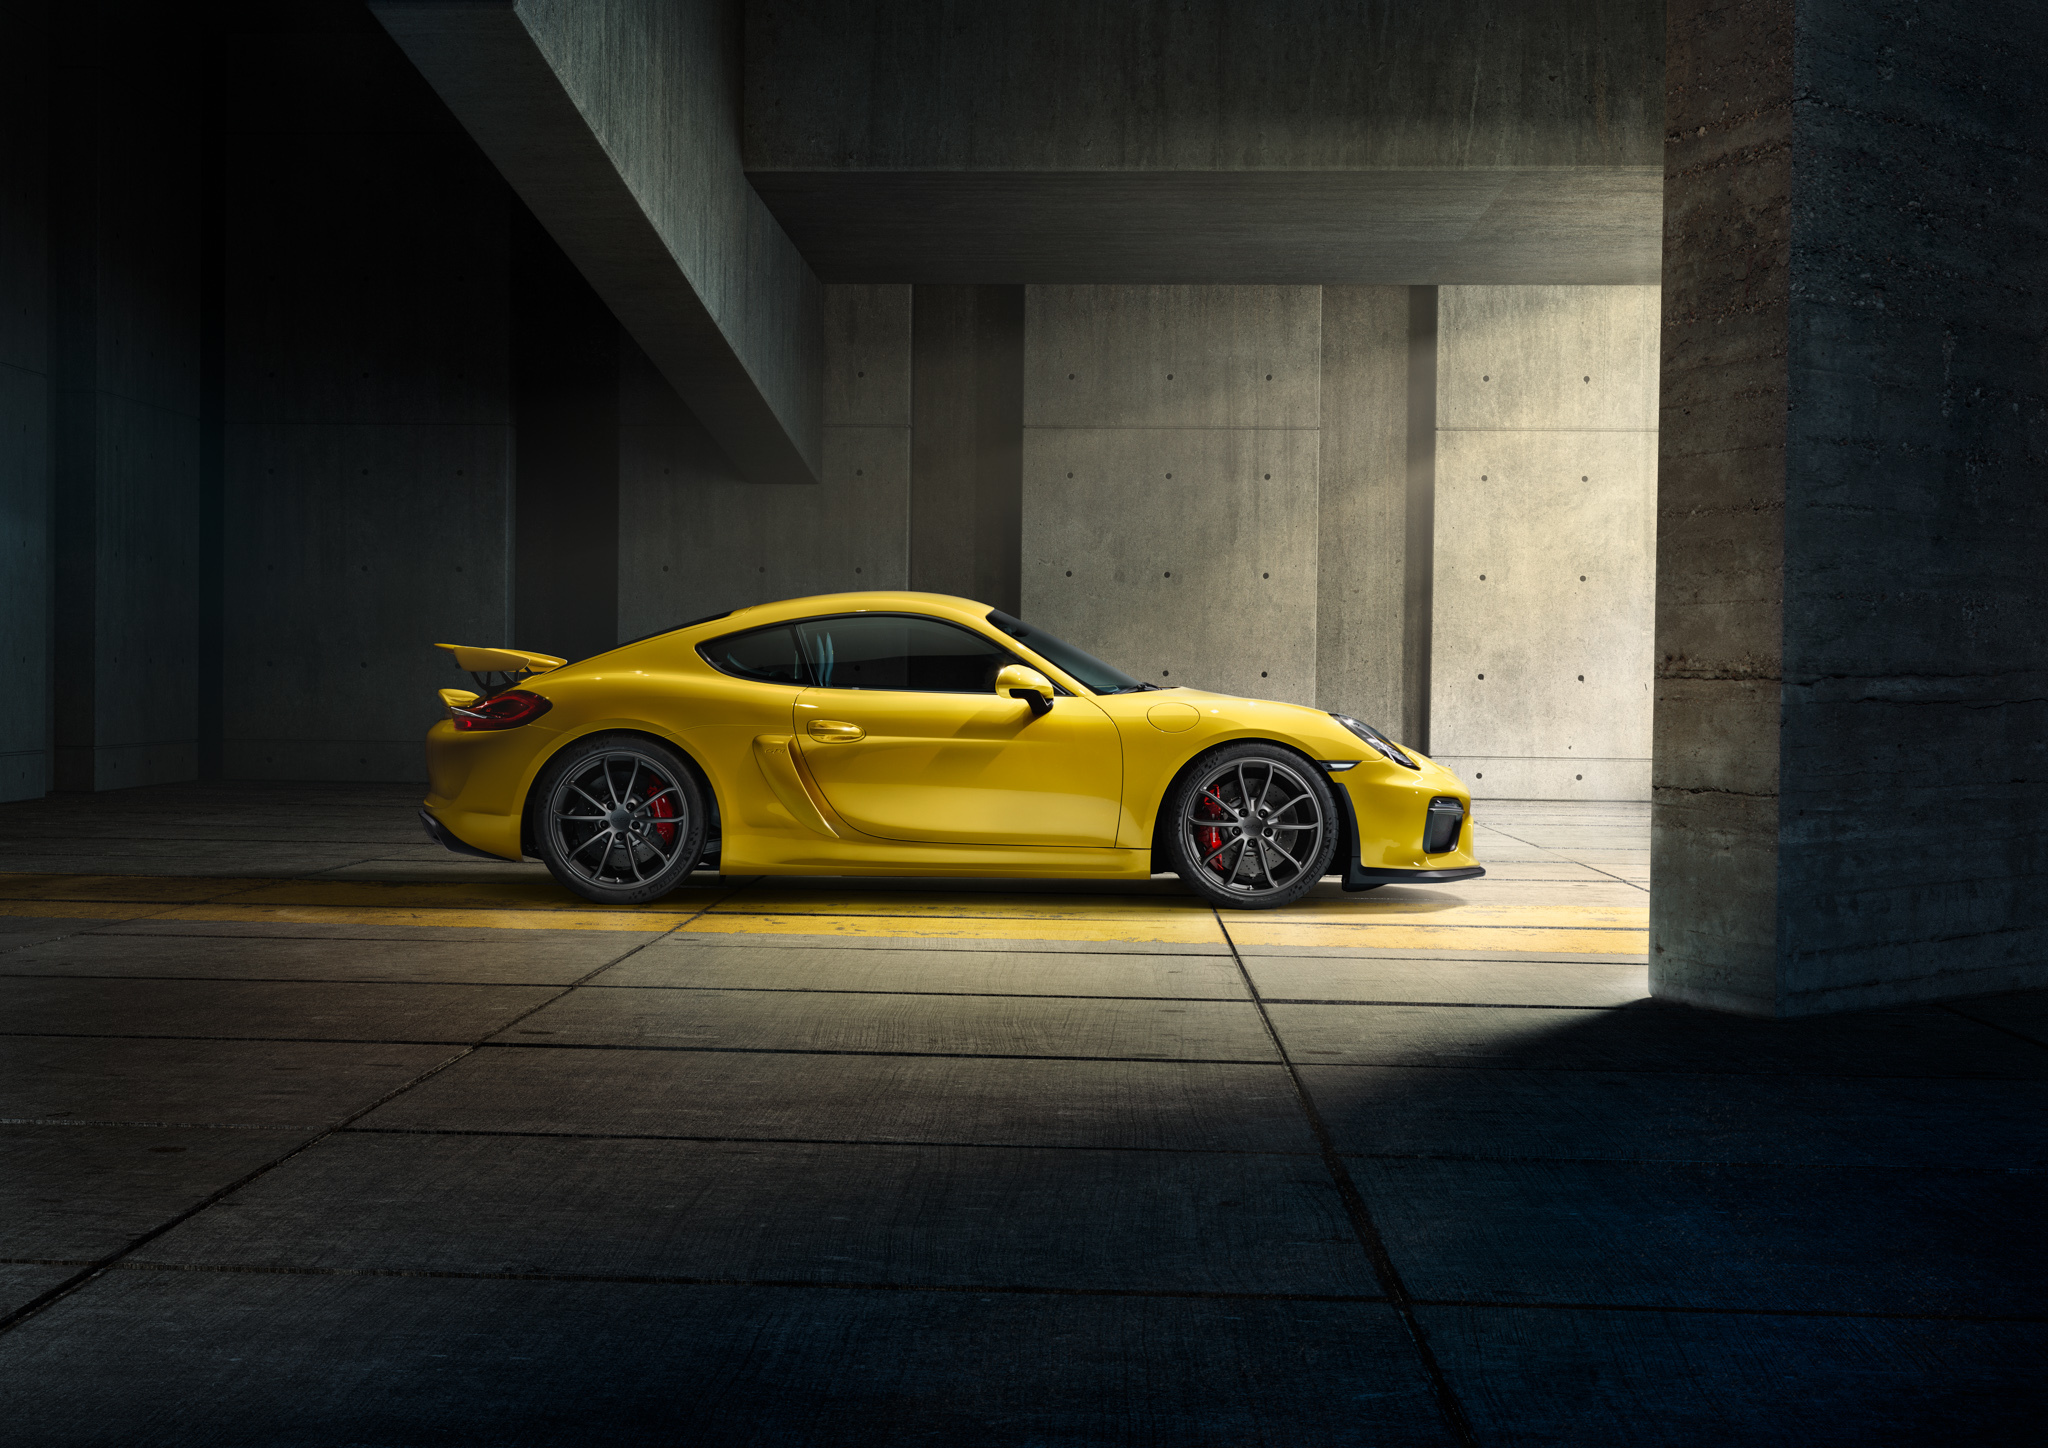 121598 download wallpaper Porsche, Cars, Cayman, Gt4, 2015 screensavers and pictures for free